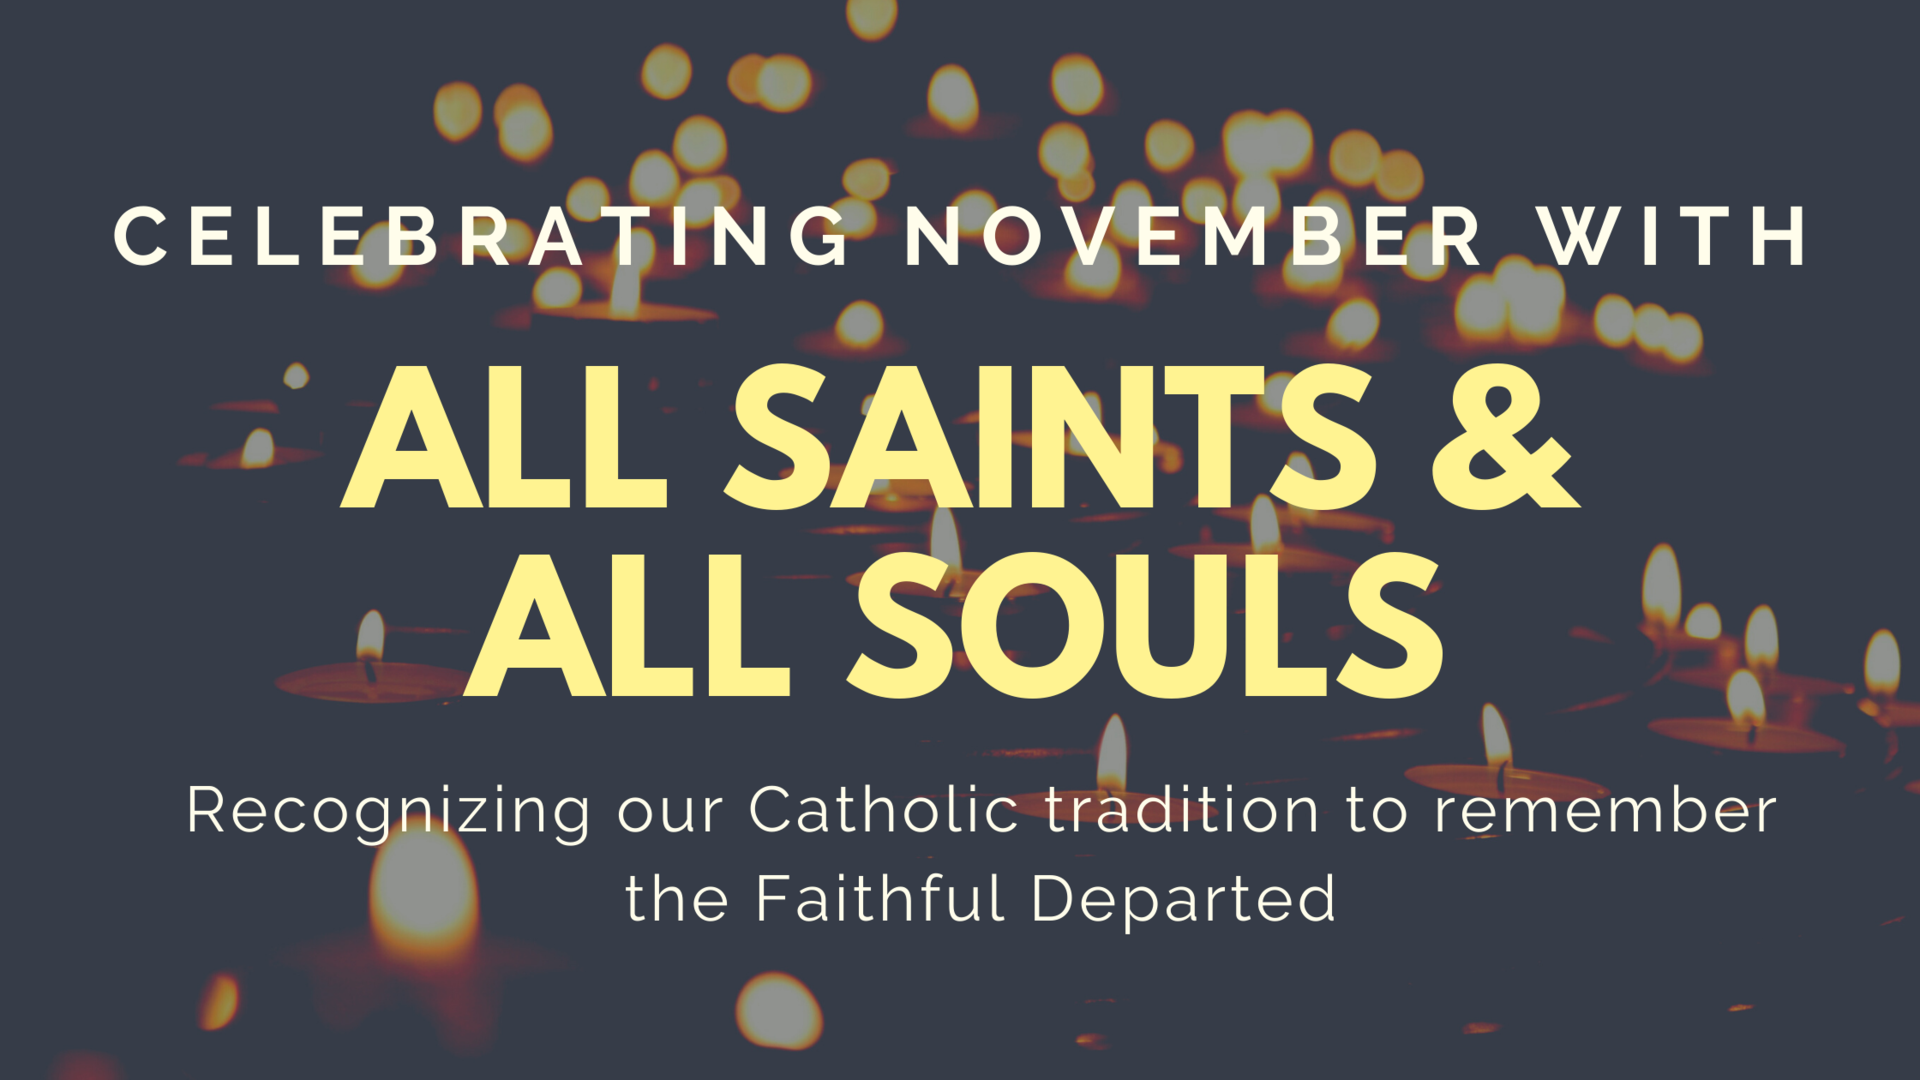 Celebrating November with All Saints and All Souls